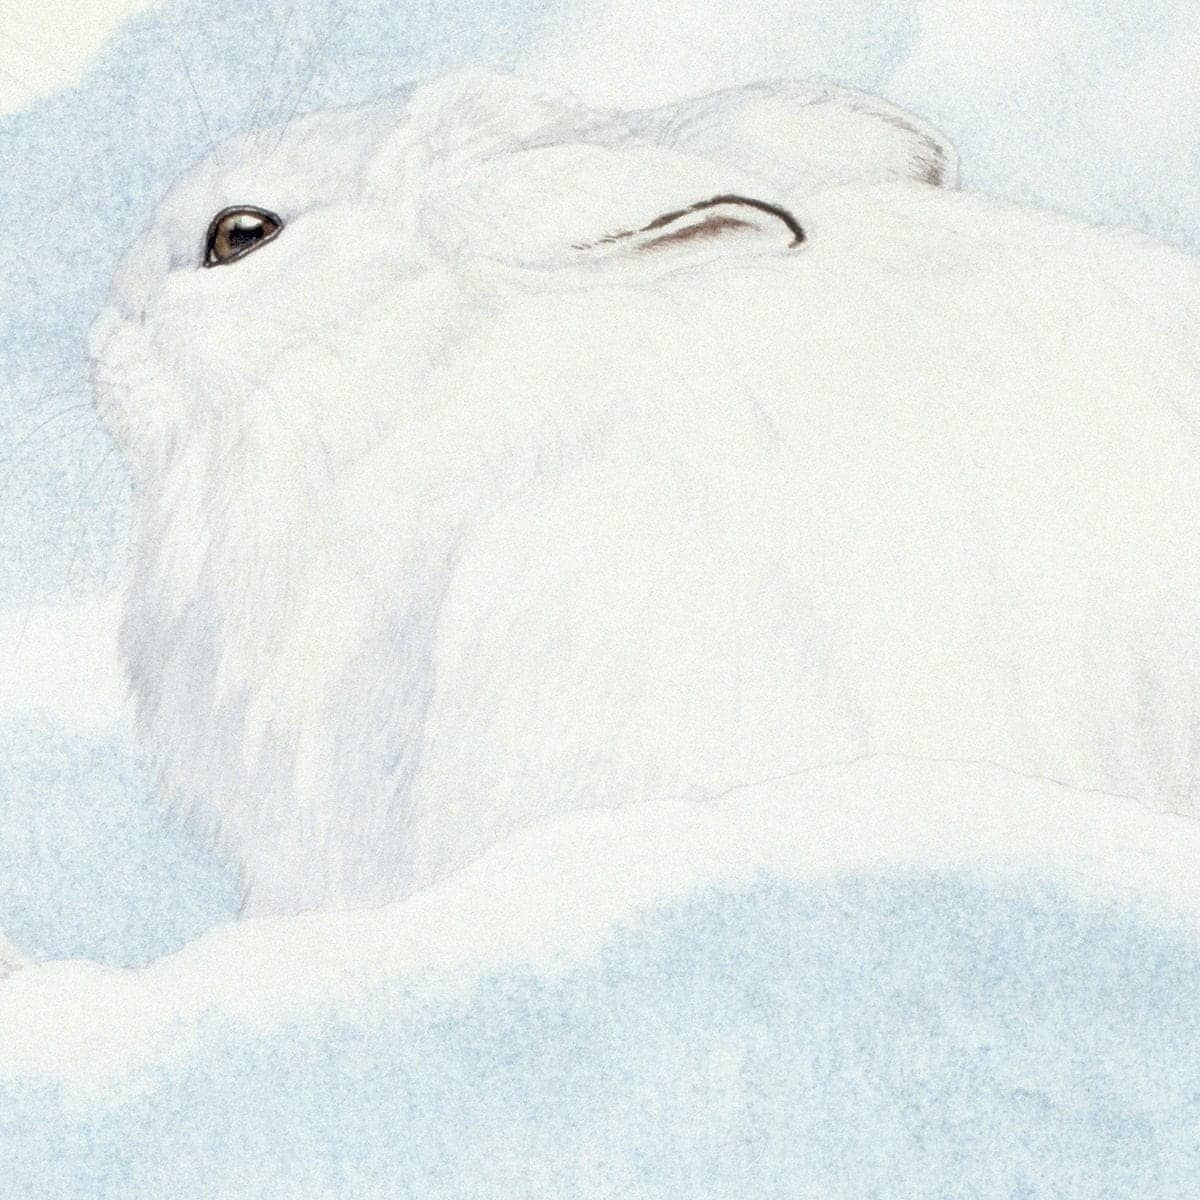 Snowshoe Hare - Art Print by Glen Loates from the Glen Loates Store